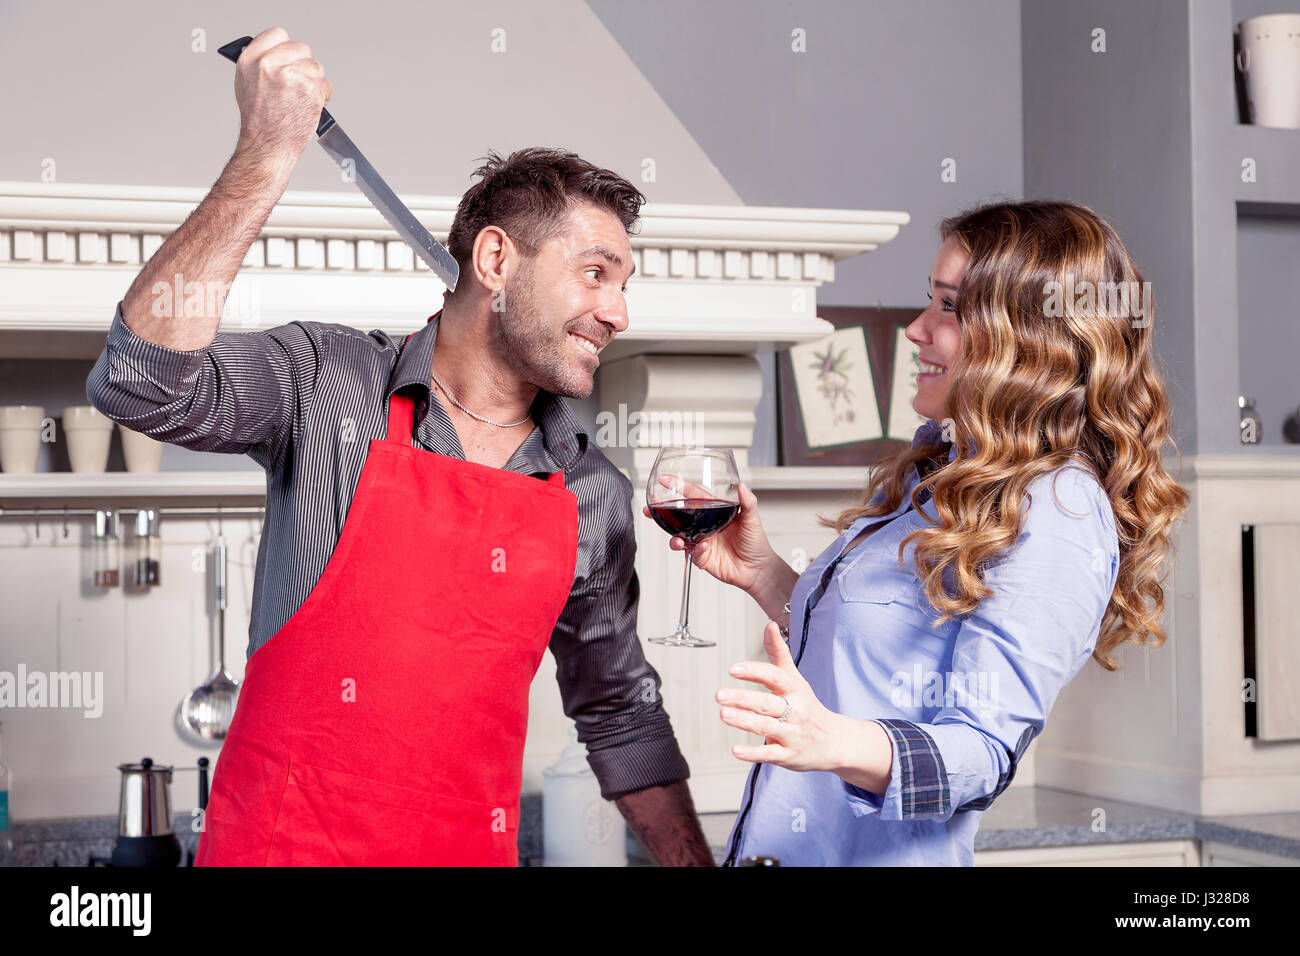 Young husband jokes with his wife in the kitchen with a knife